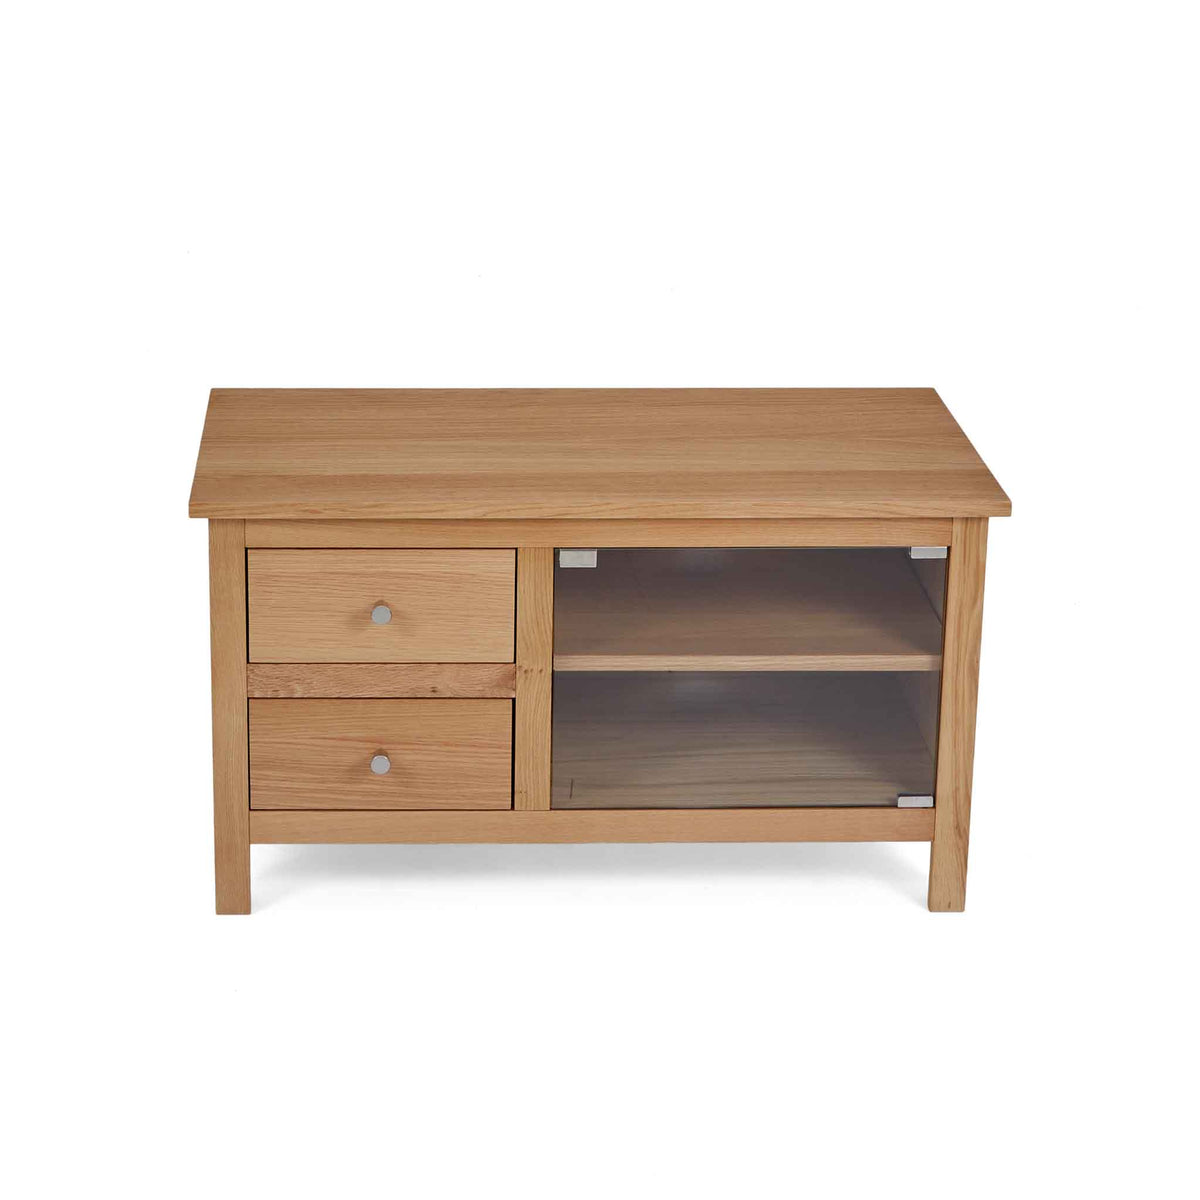 tabletop view of the Falmouth Oak 90cm TV Stand by Roseland Furniture